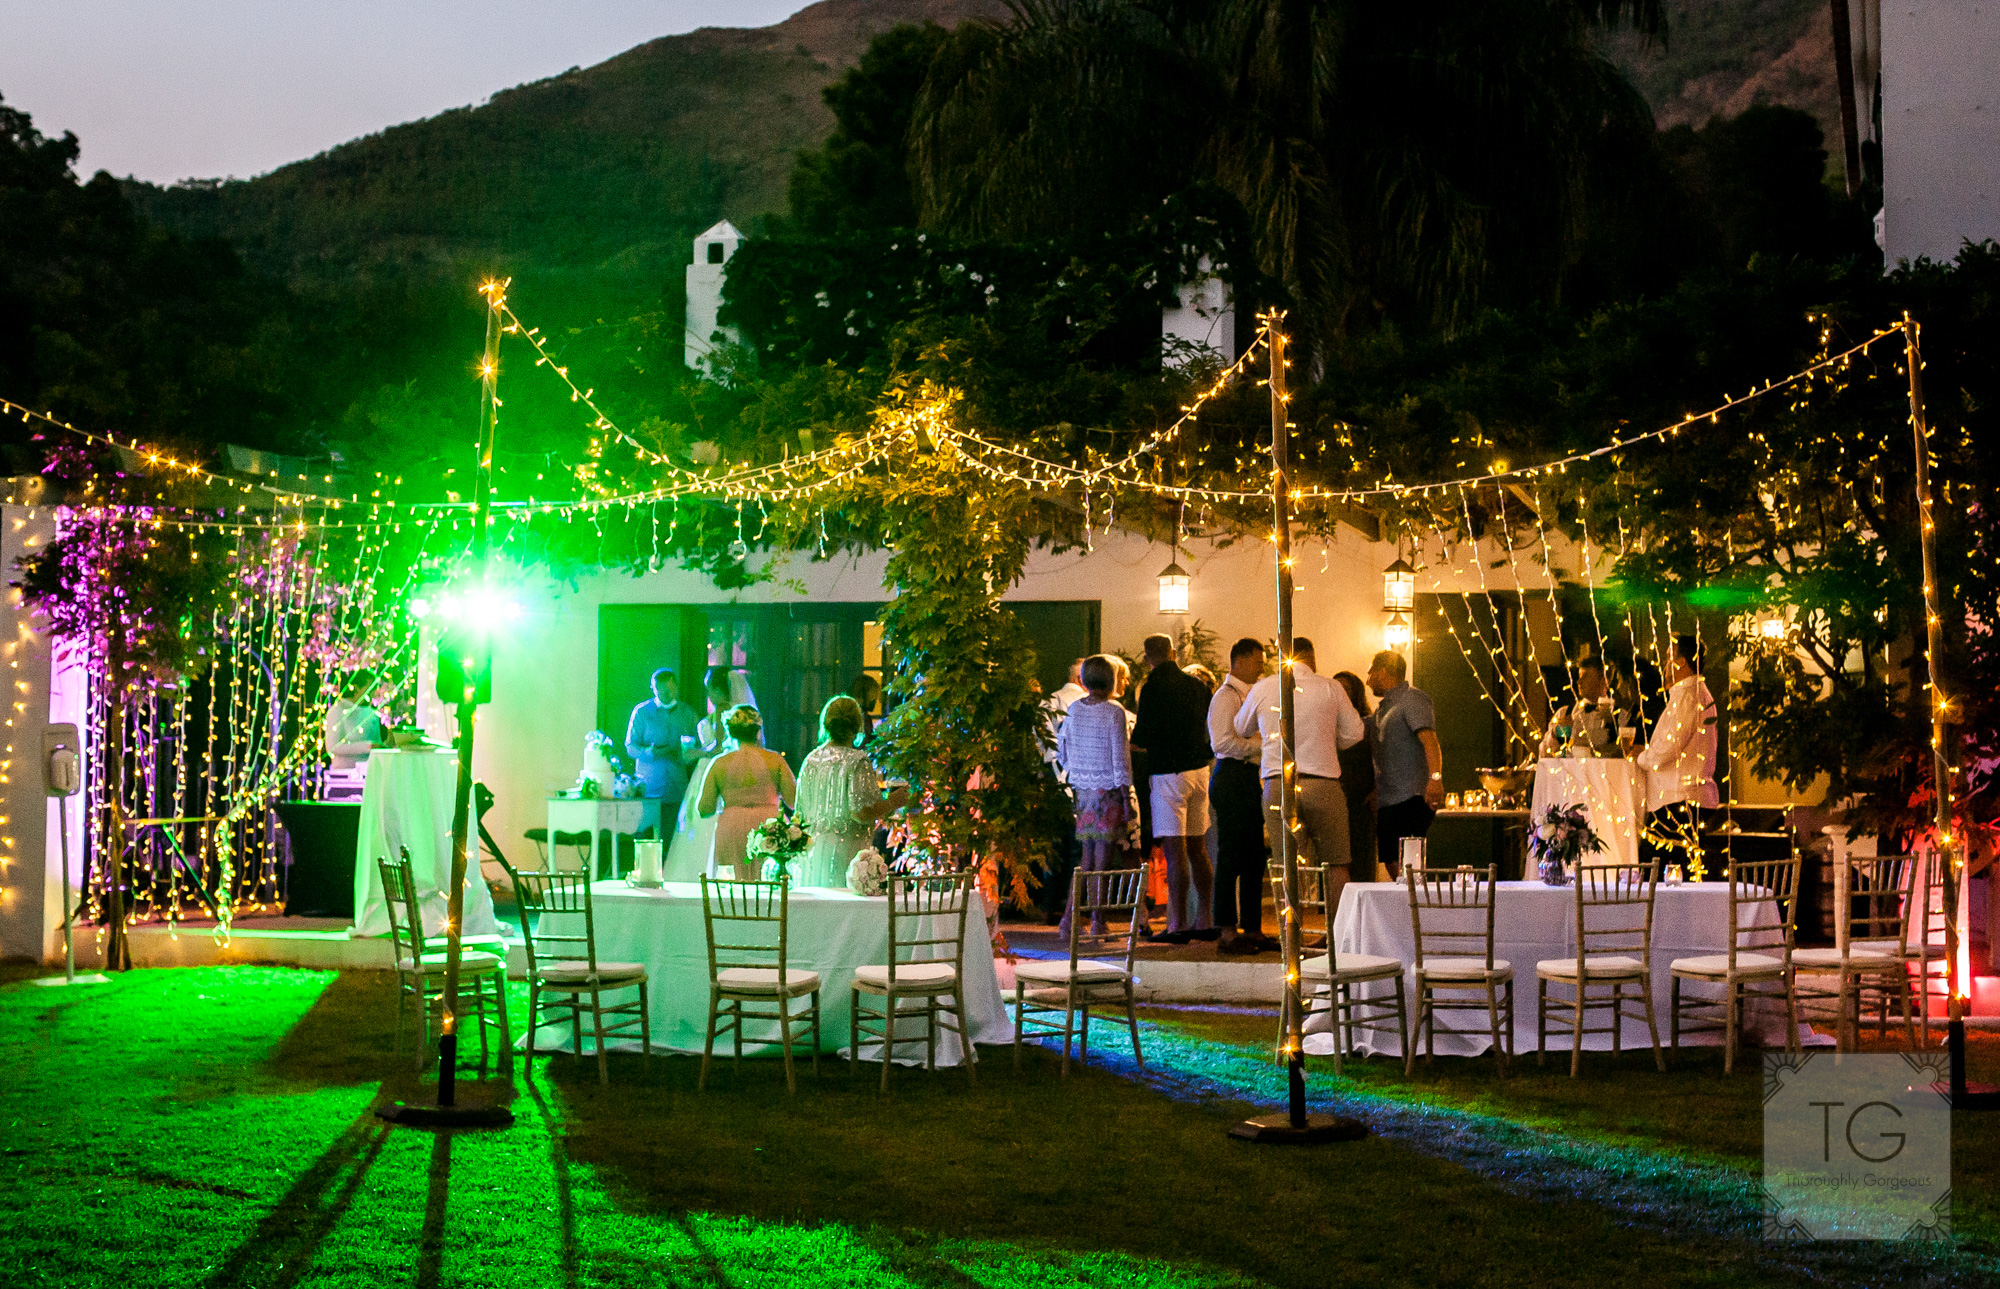 Wedding guests in the evening